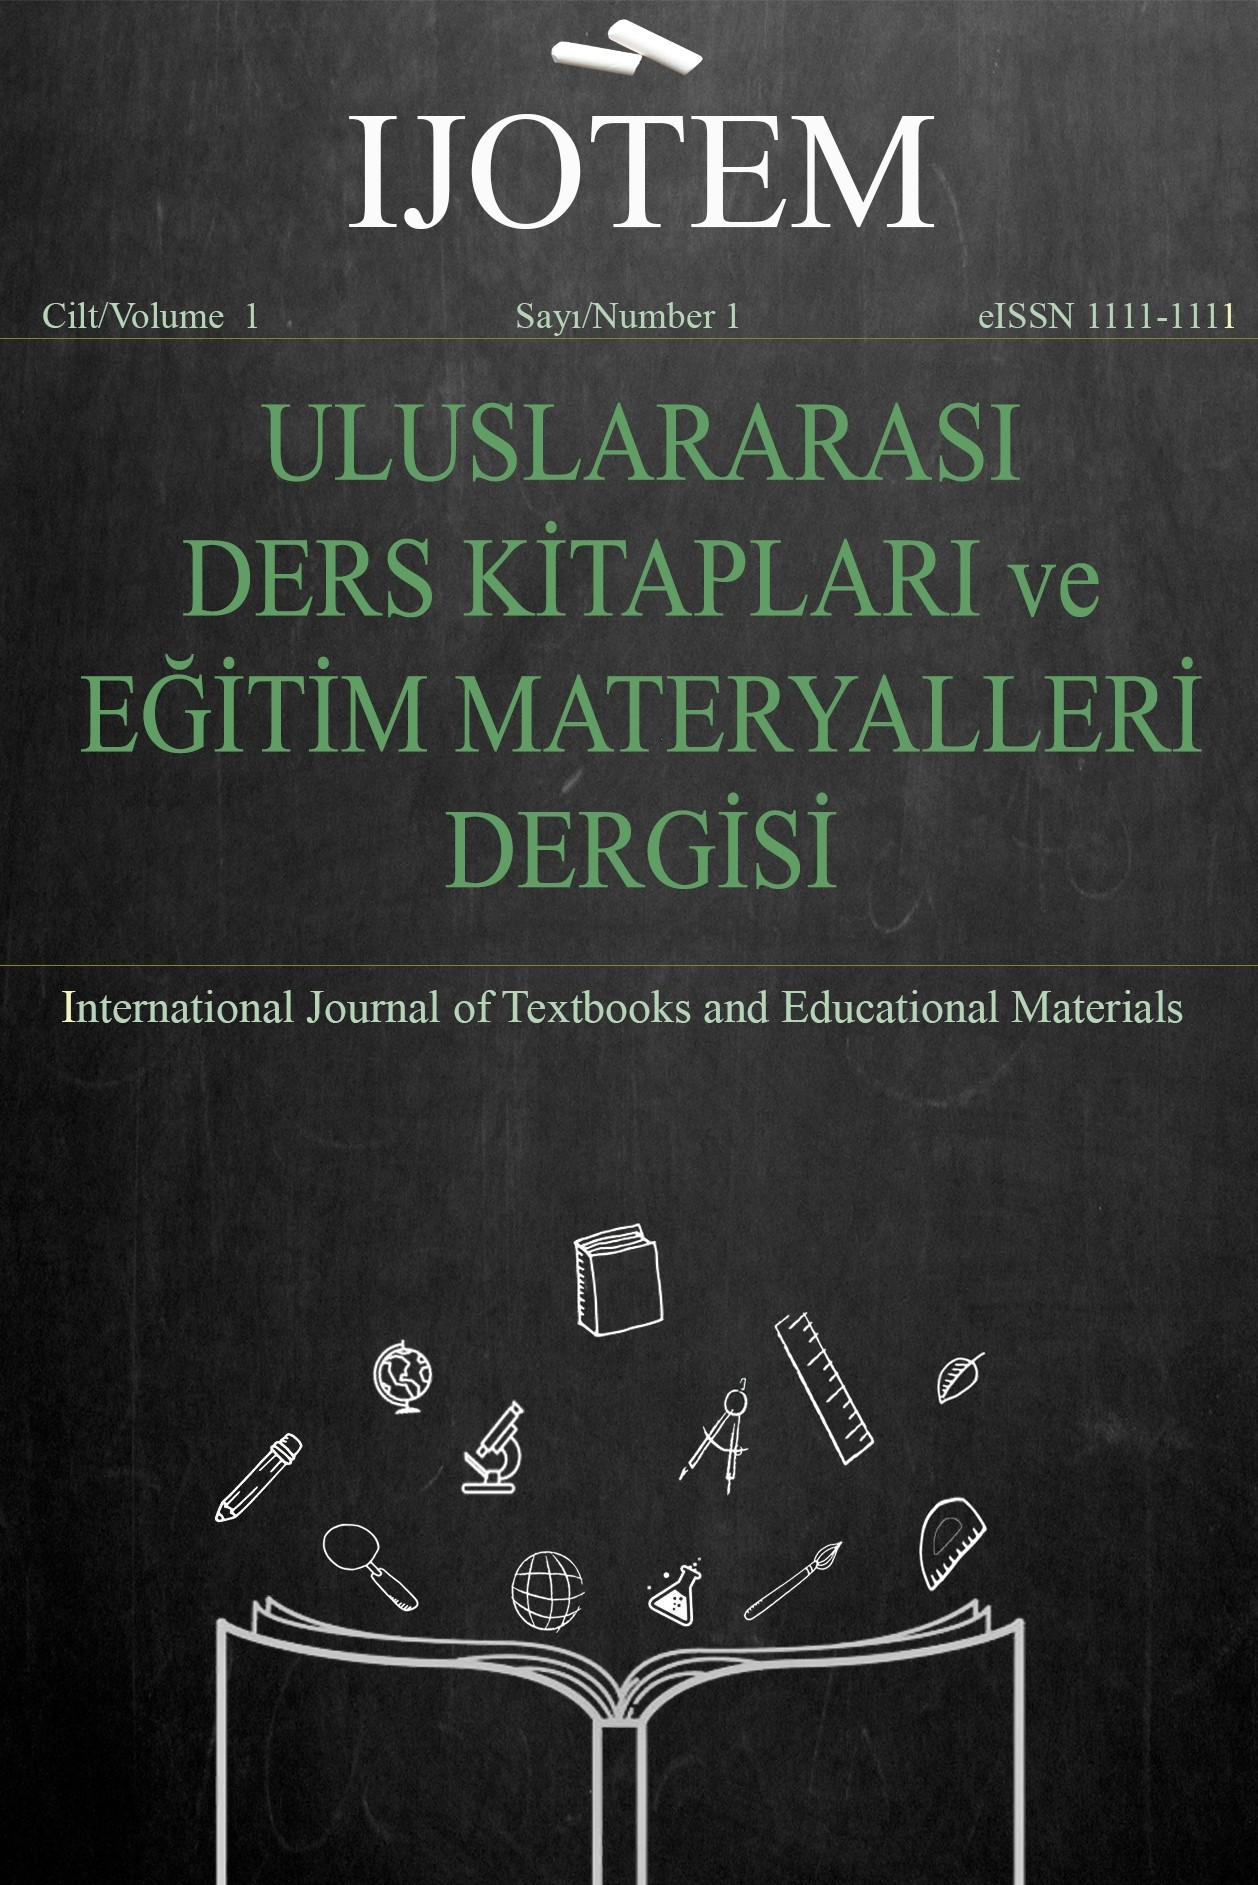 International Journal of Textbooks and Education Materials